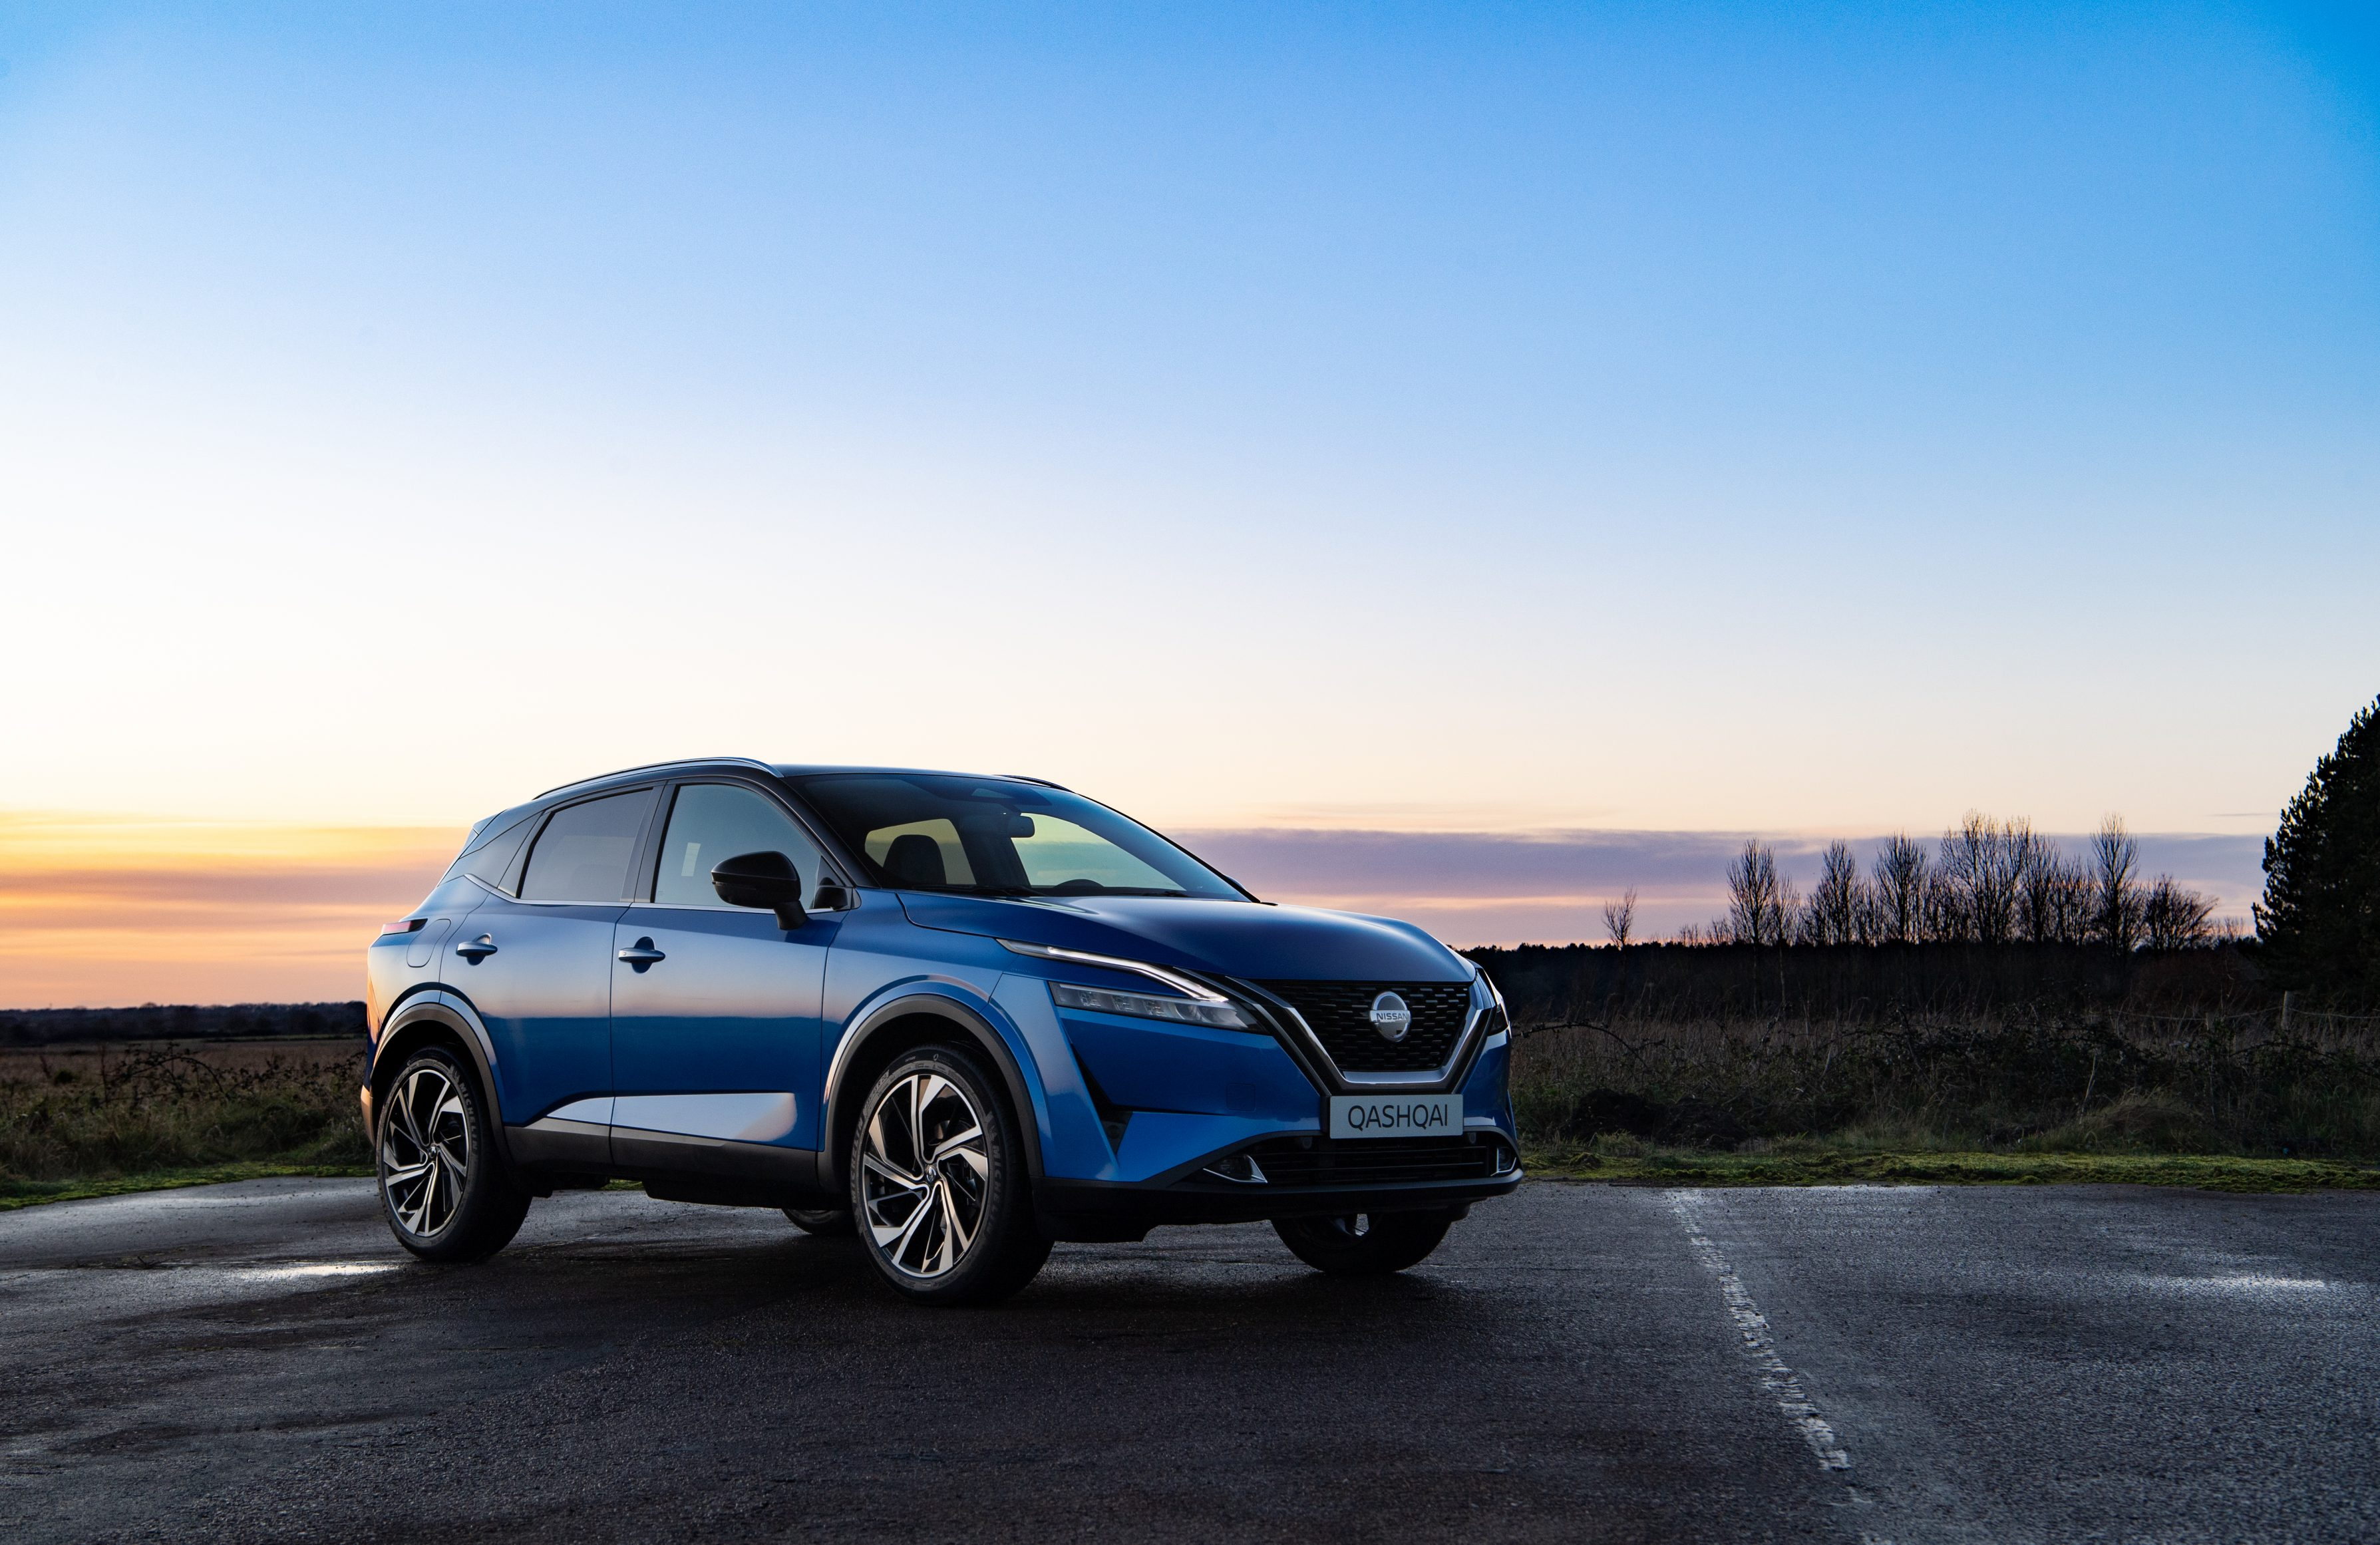 The all-new Nissan Qashqai will be available to lease this summer.